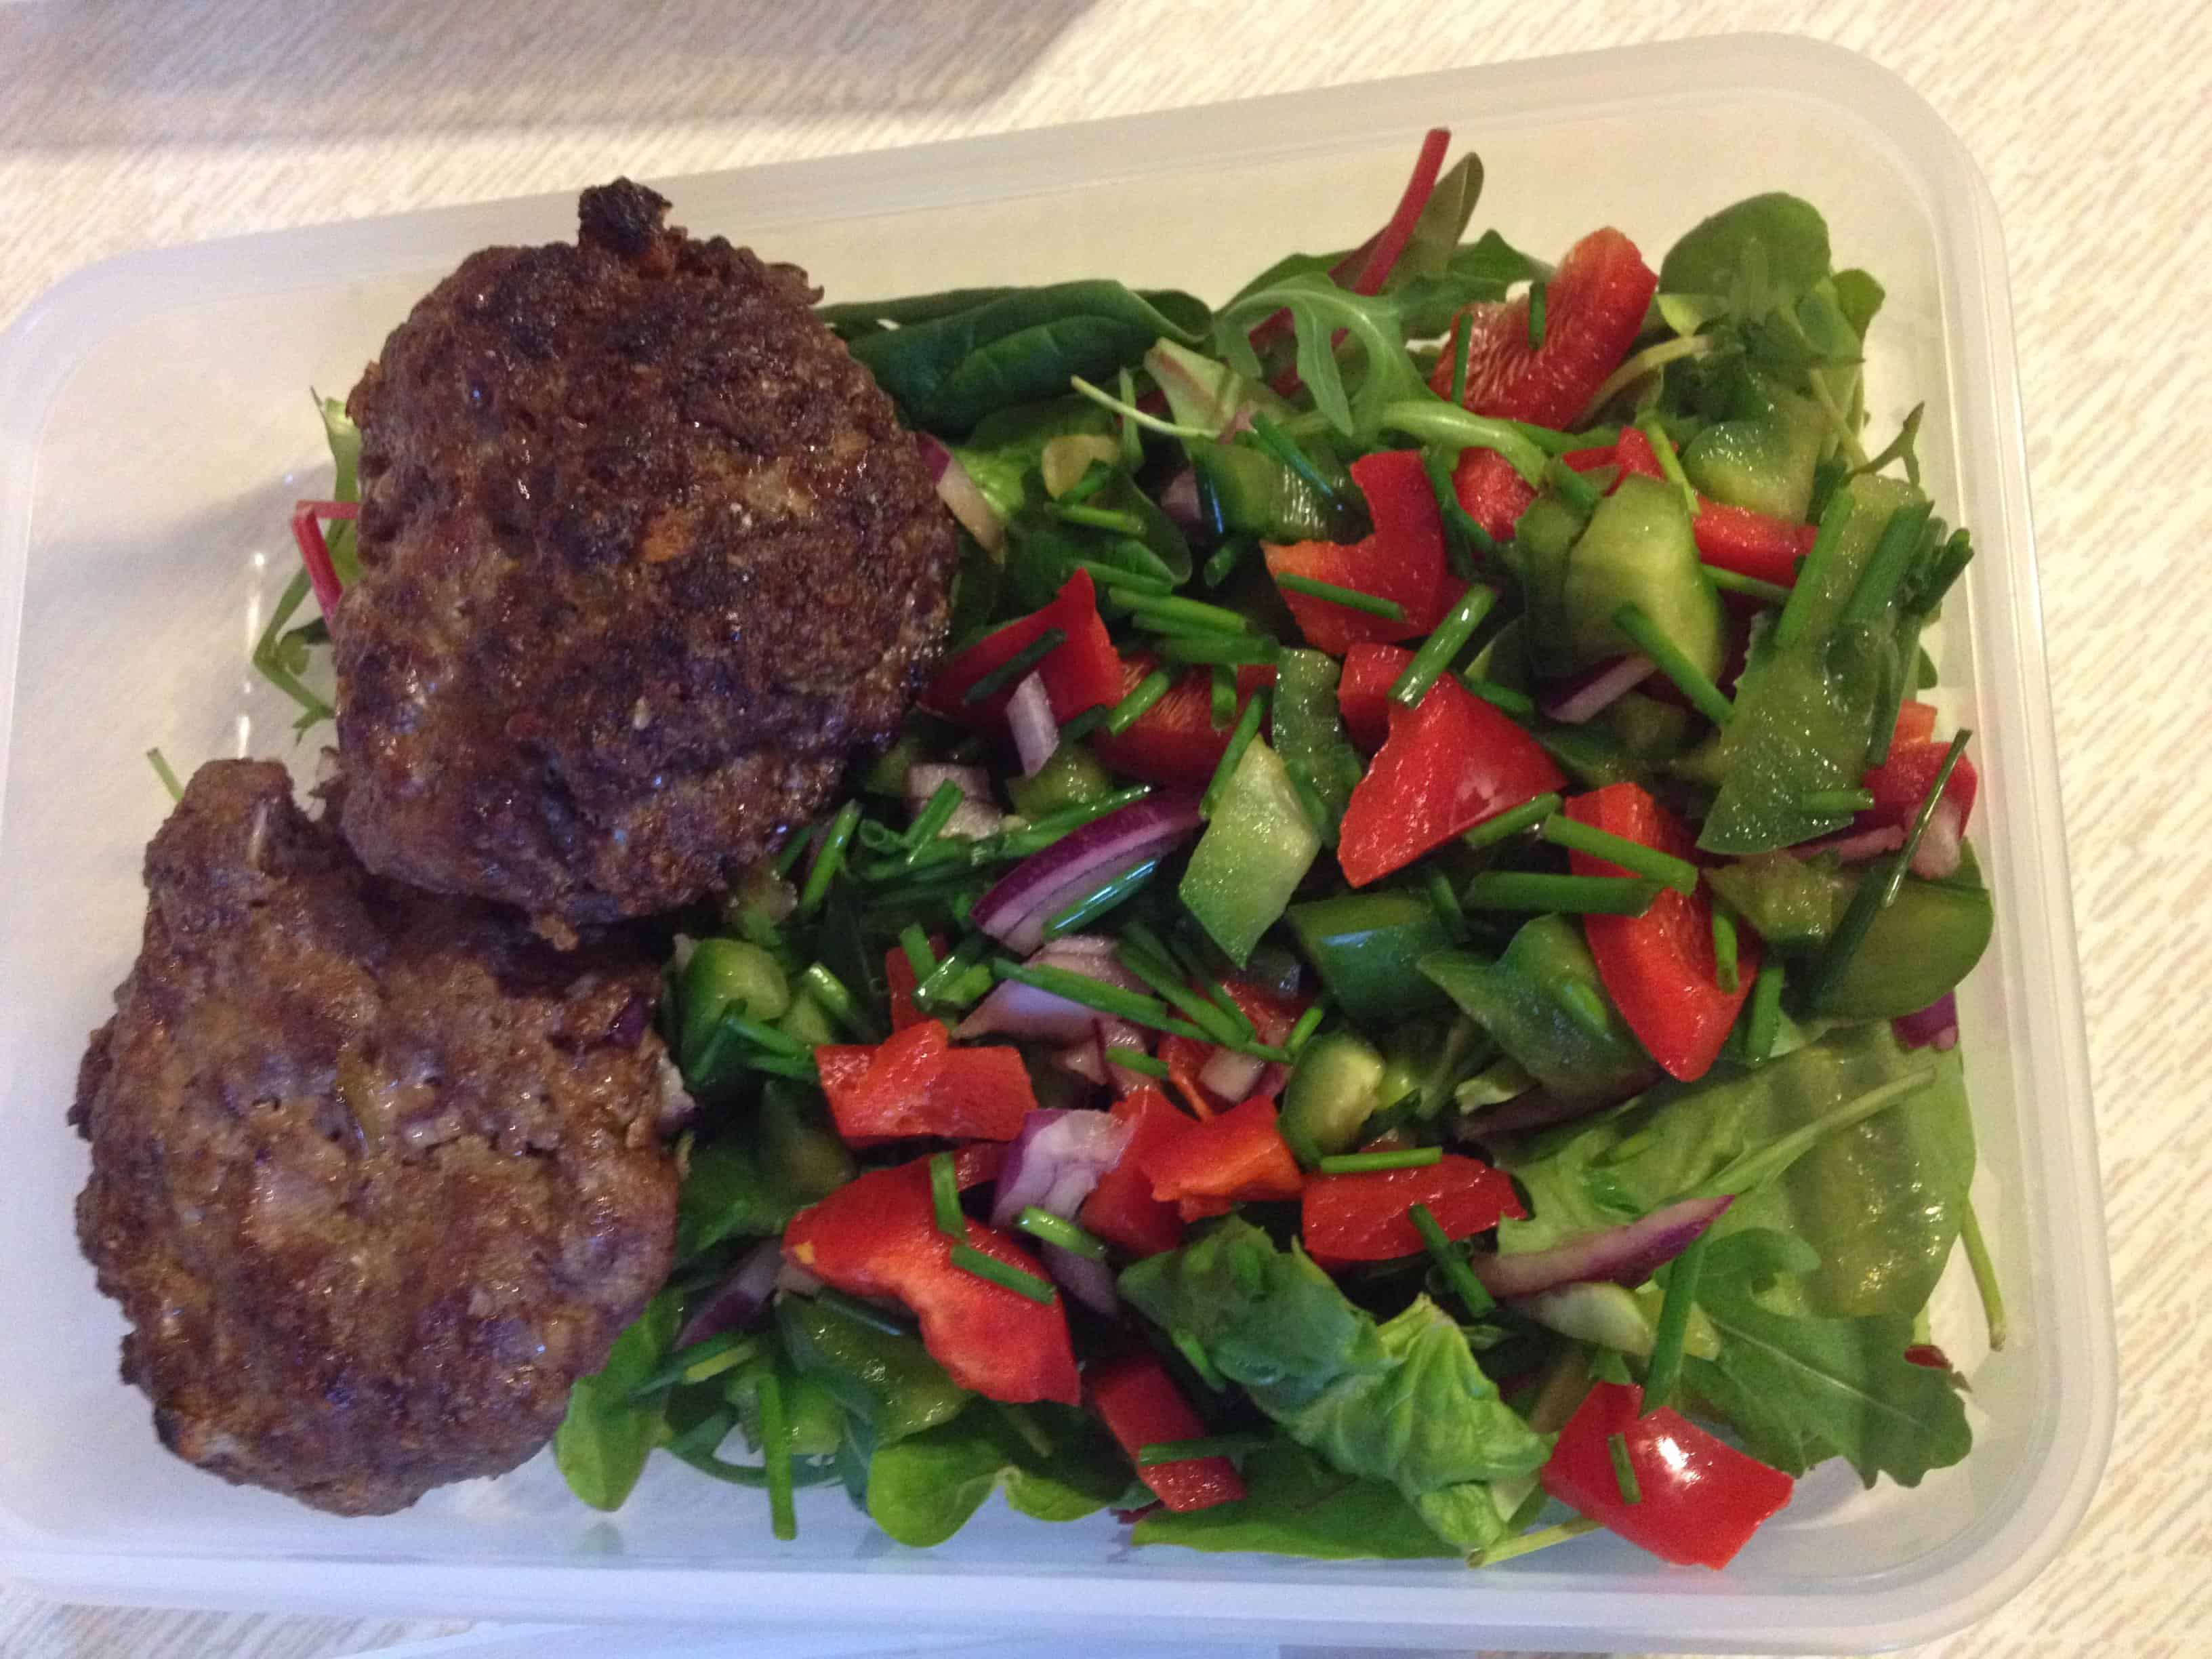 Home made burgers with a colourful salad